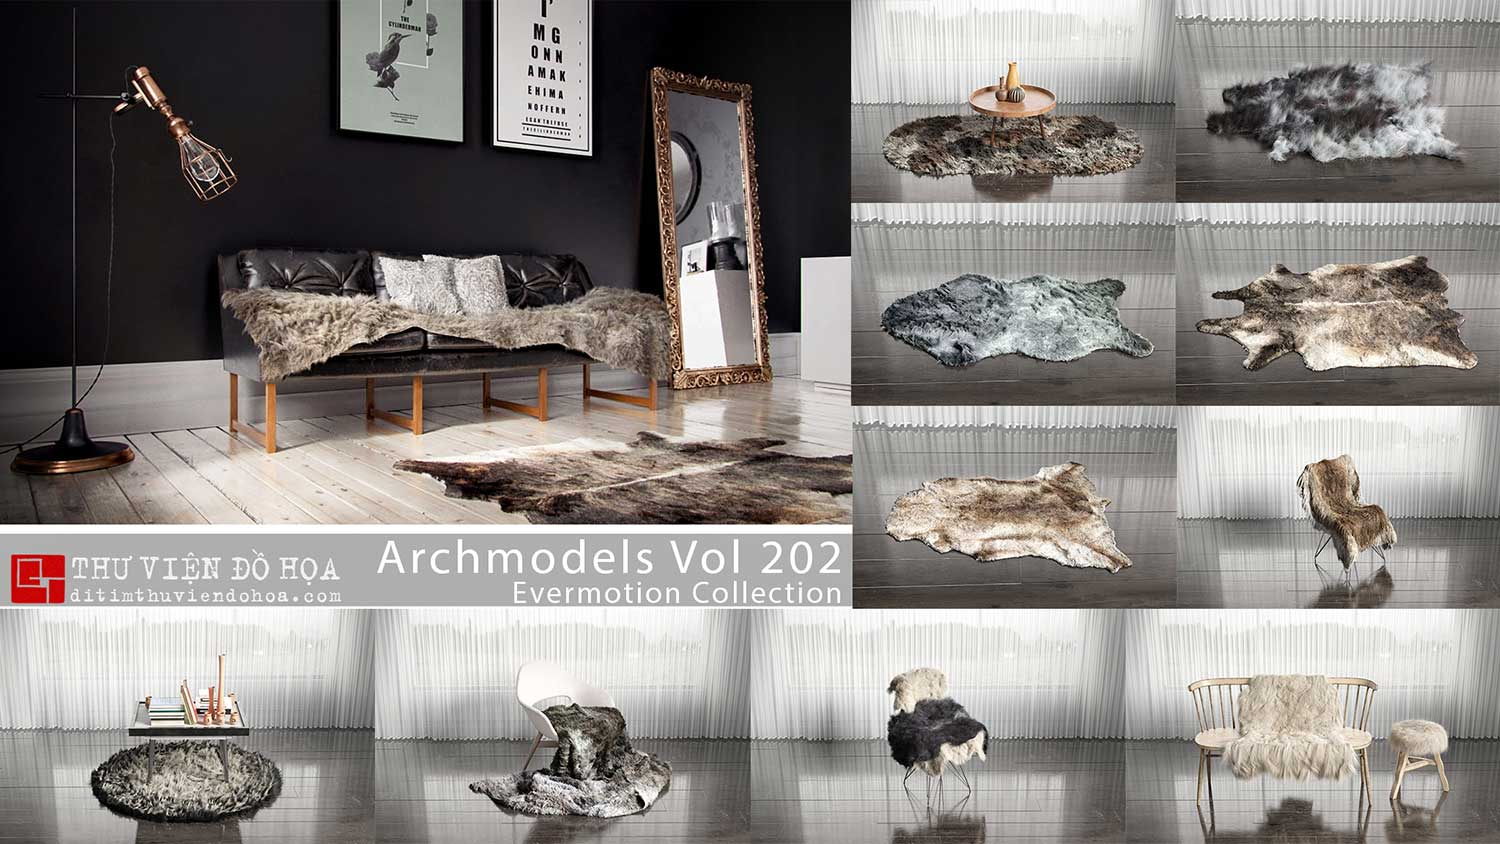 Evermotion Archmodels Vol 202